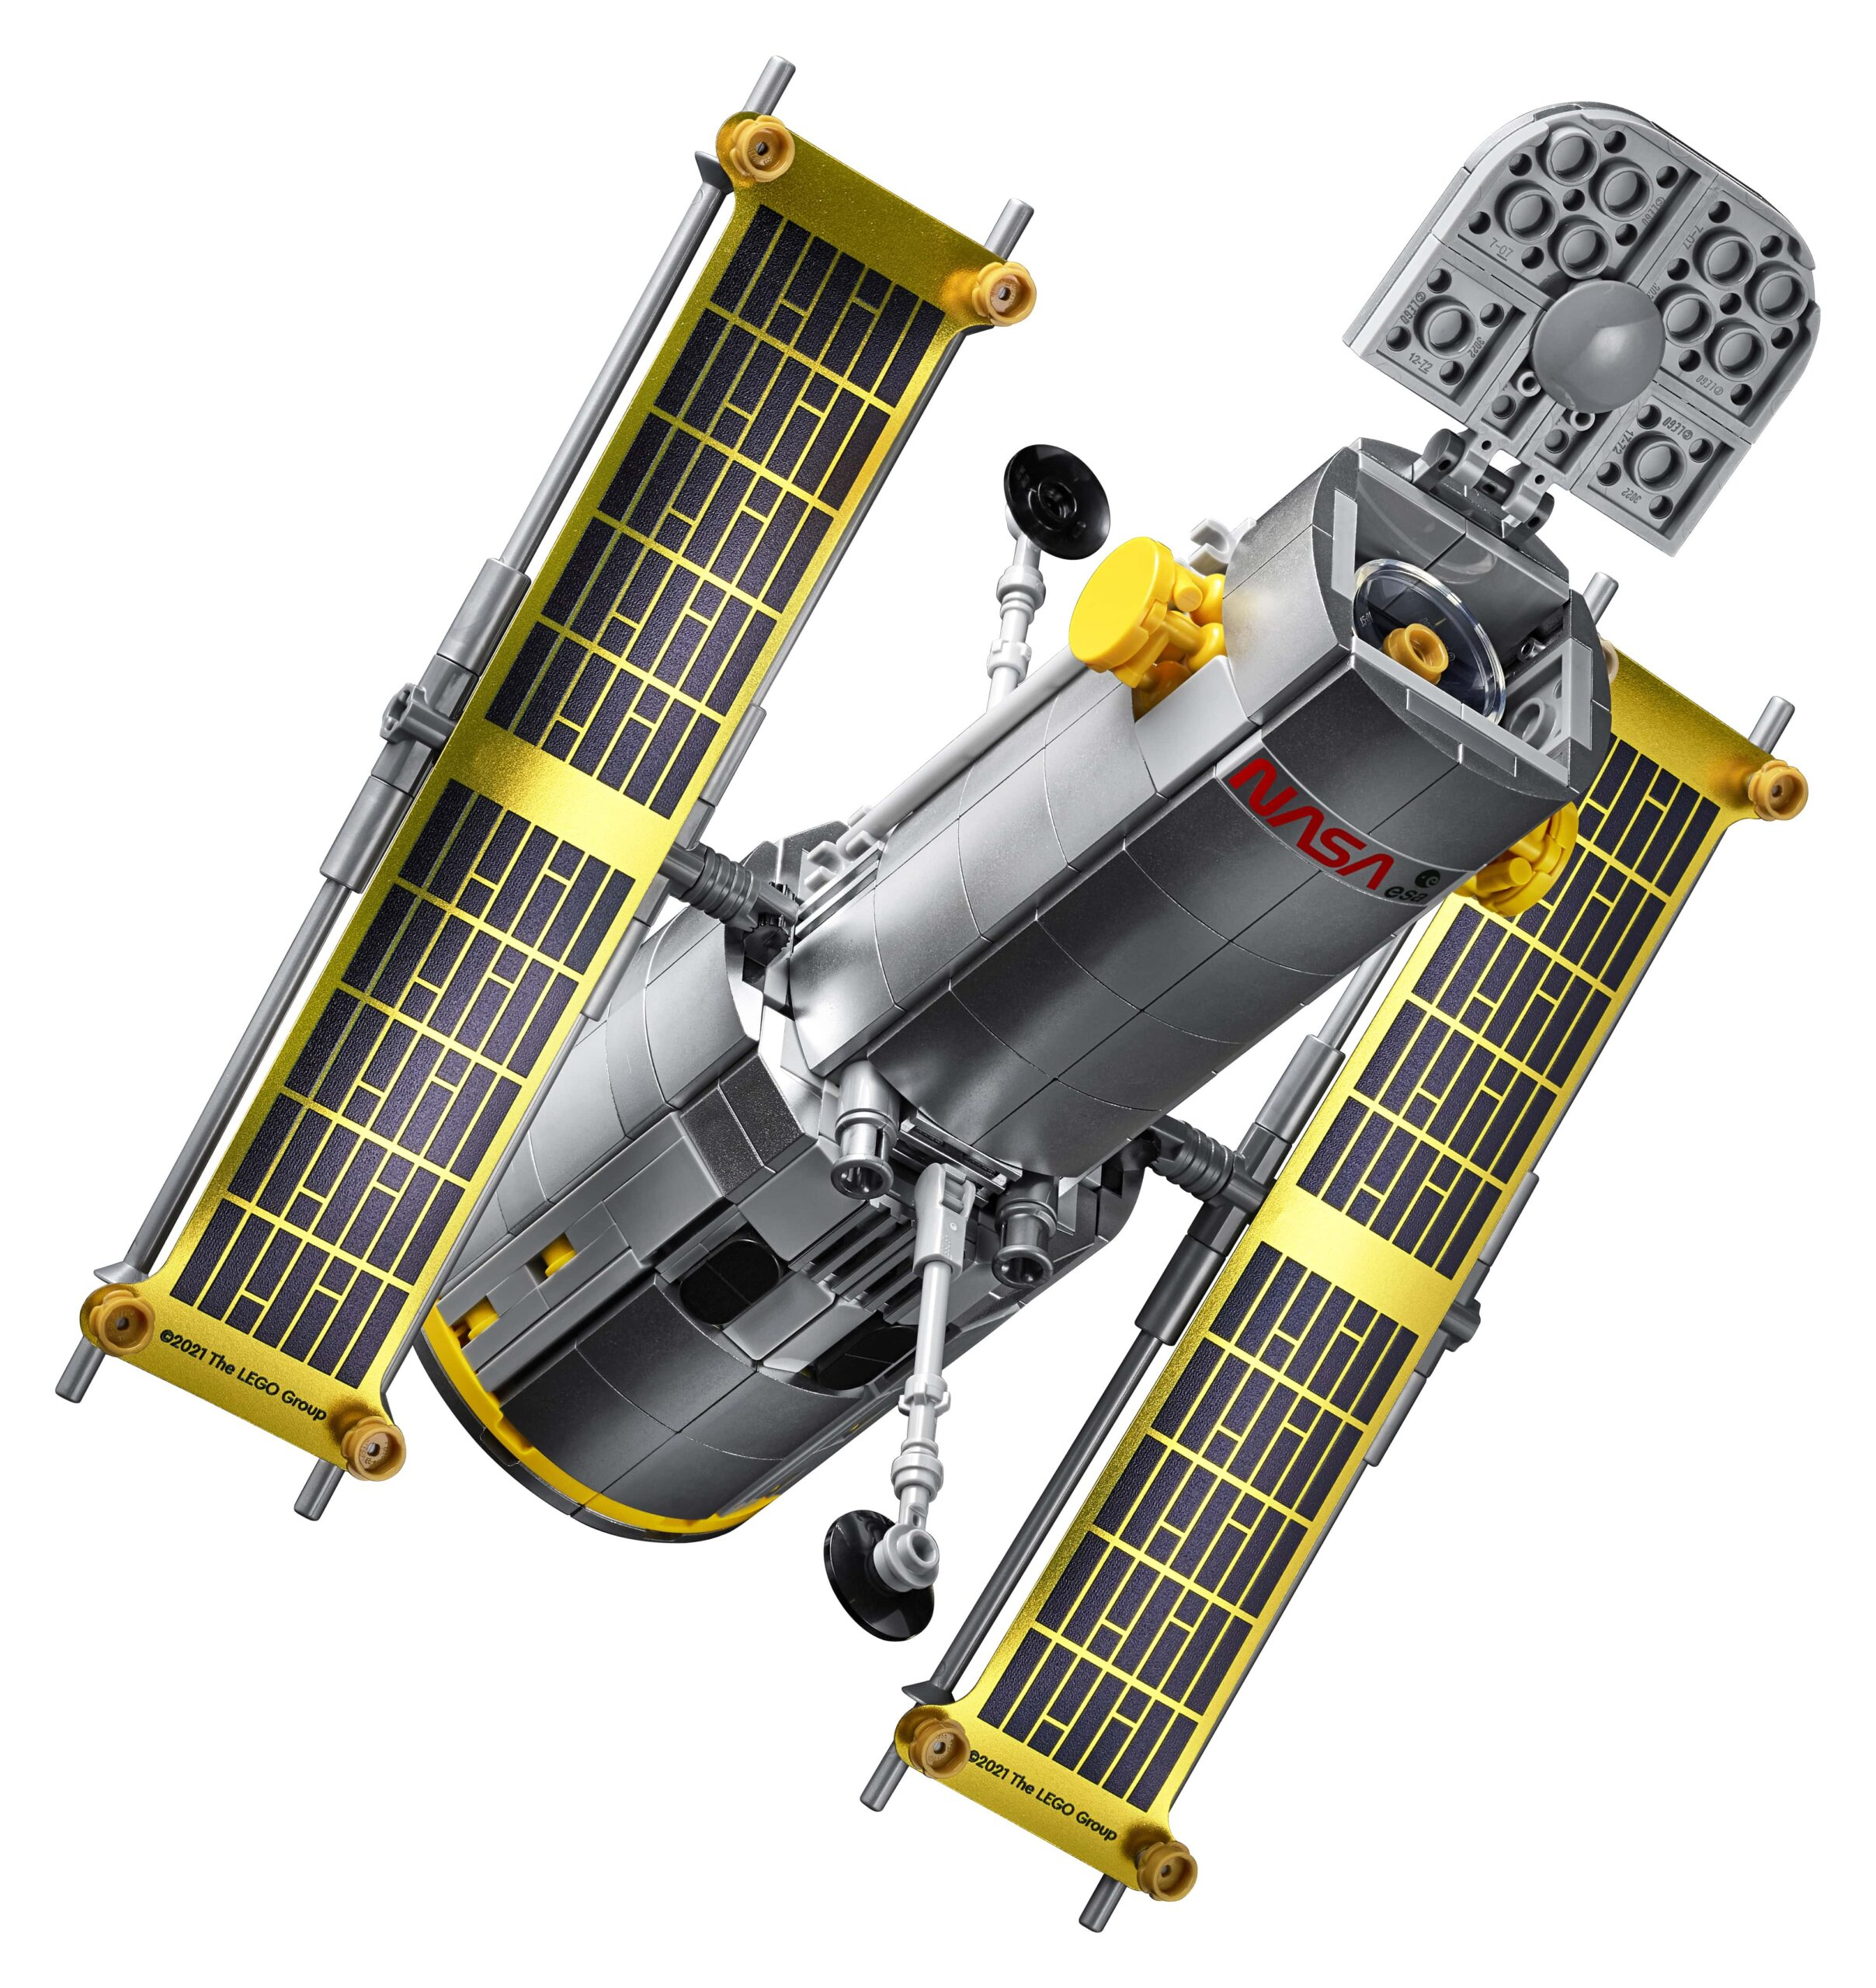 LEGO NASA Space Shuttle Discovery Product 9